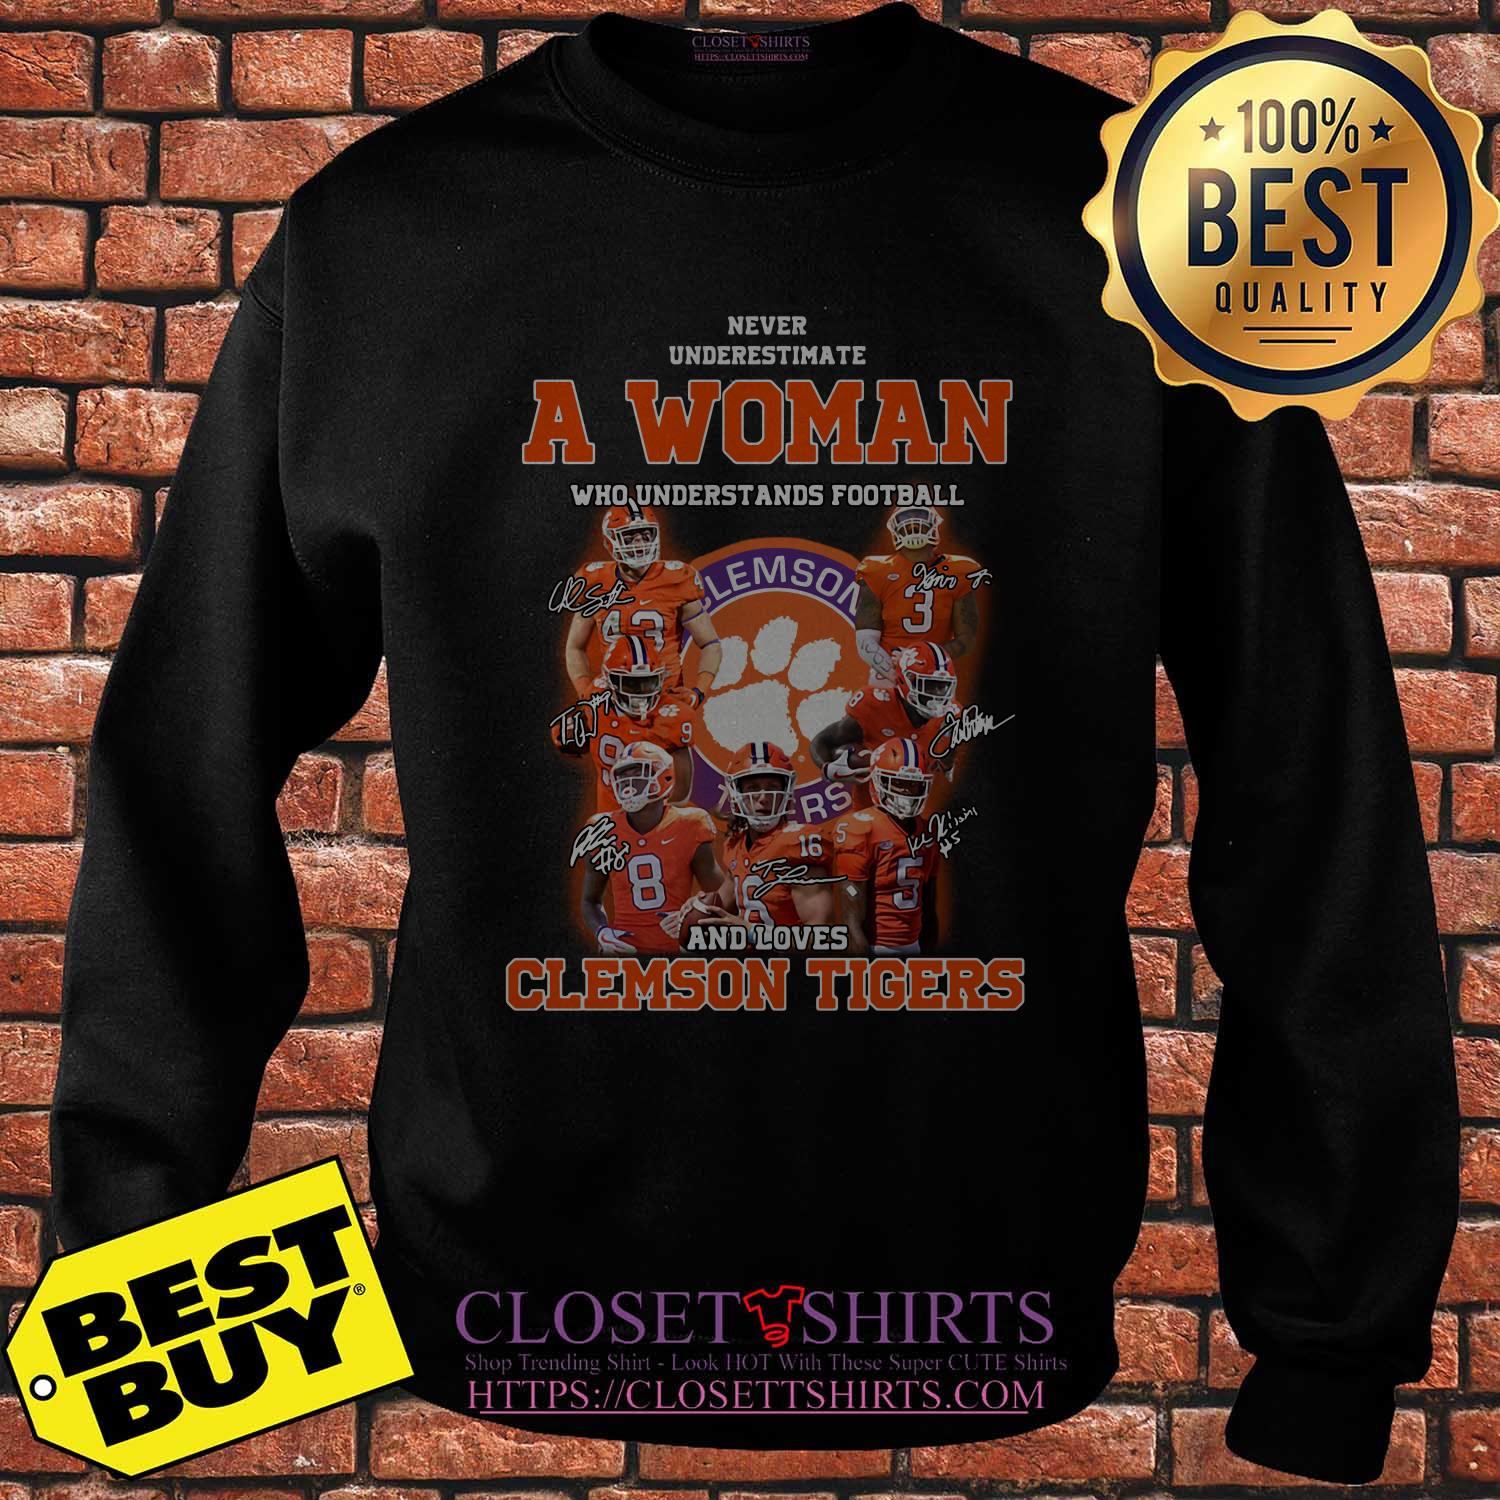 Never Underestimate A Woman Who Understands Football And Clemson Tigers sweatshirt